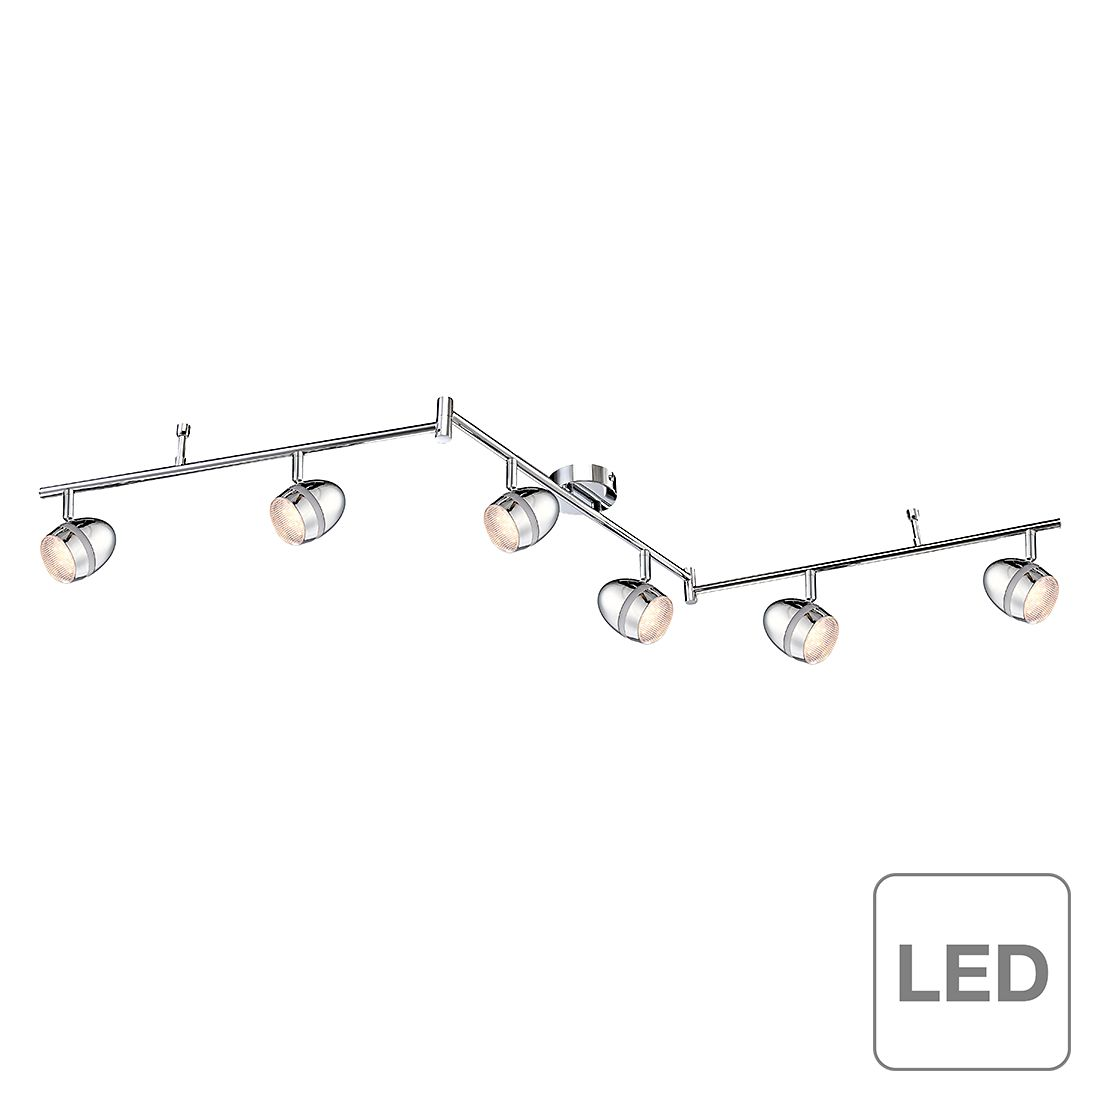 Strahler Strahler Chrom - 6-flammig, Globo Lighting